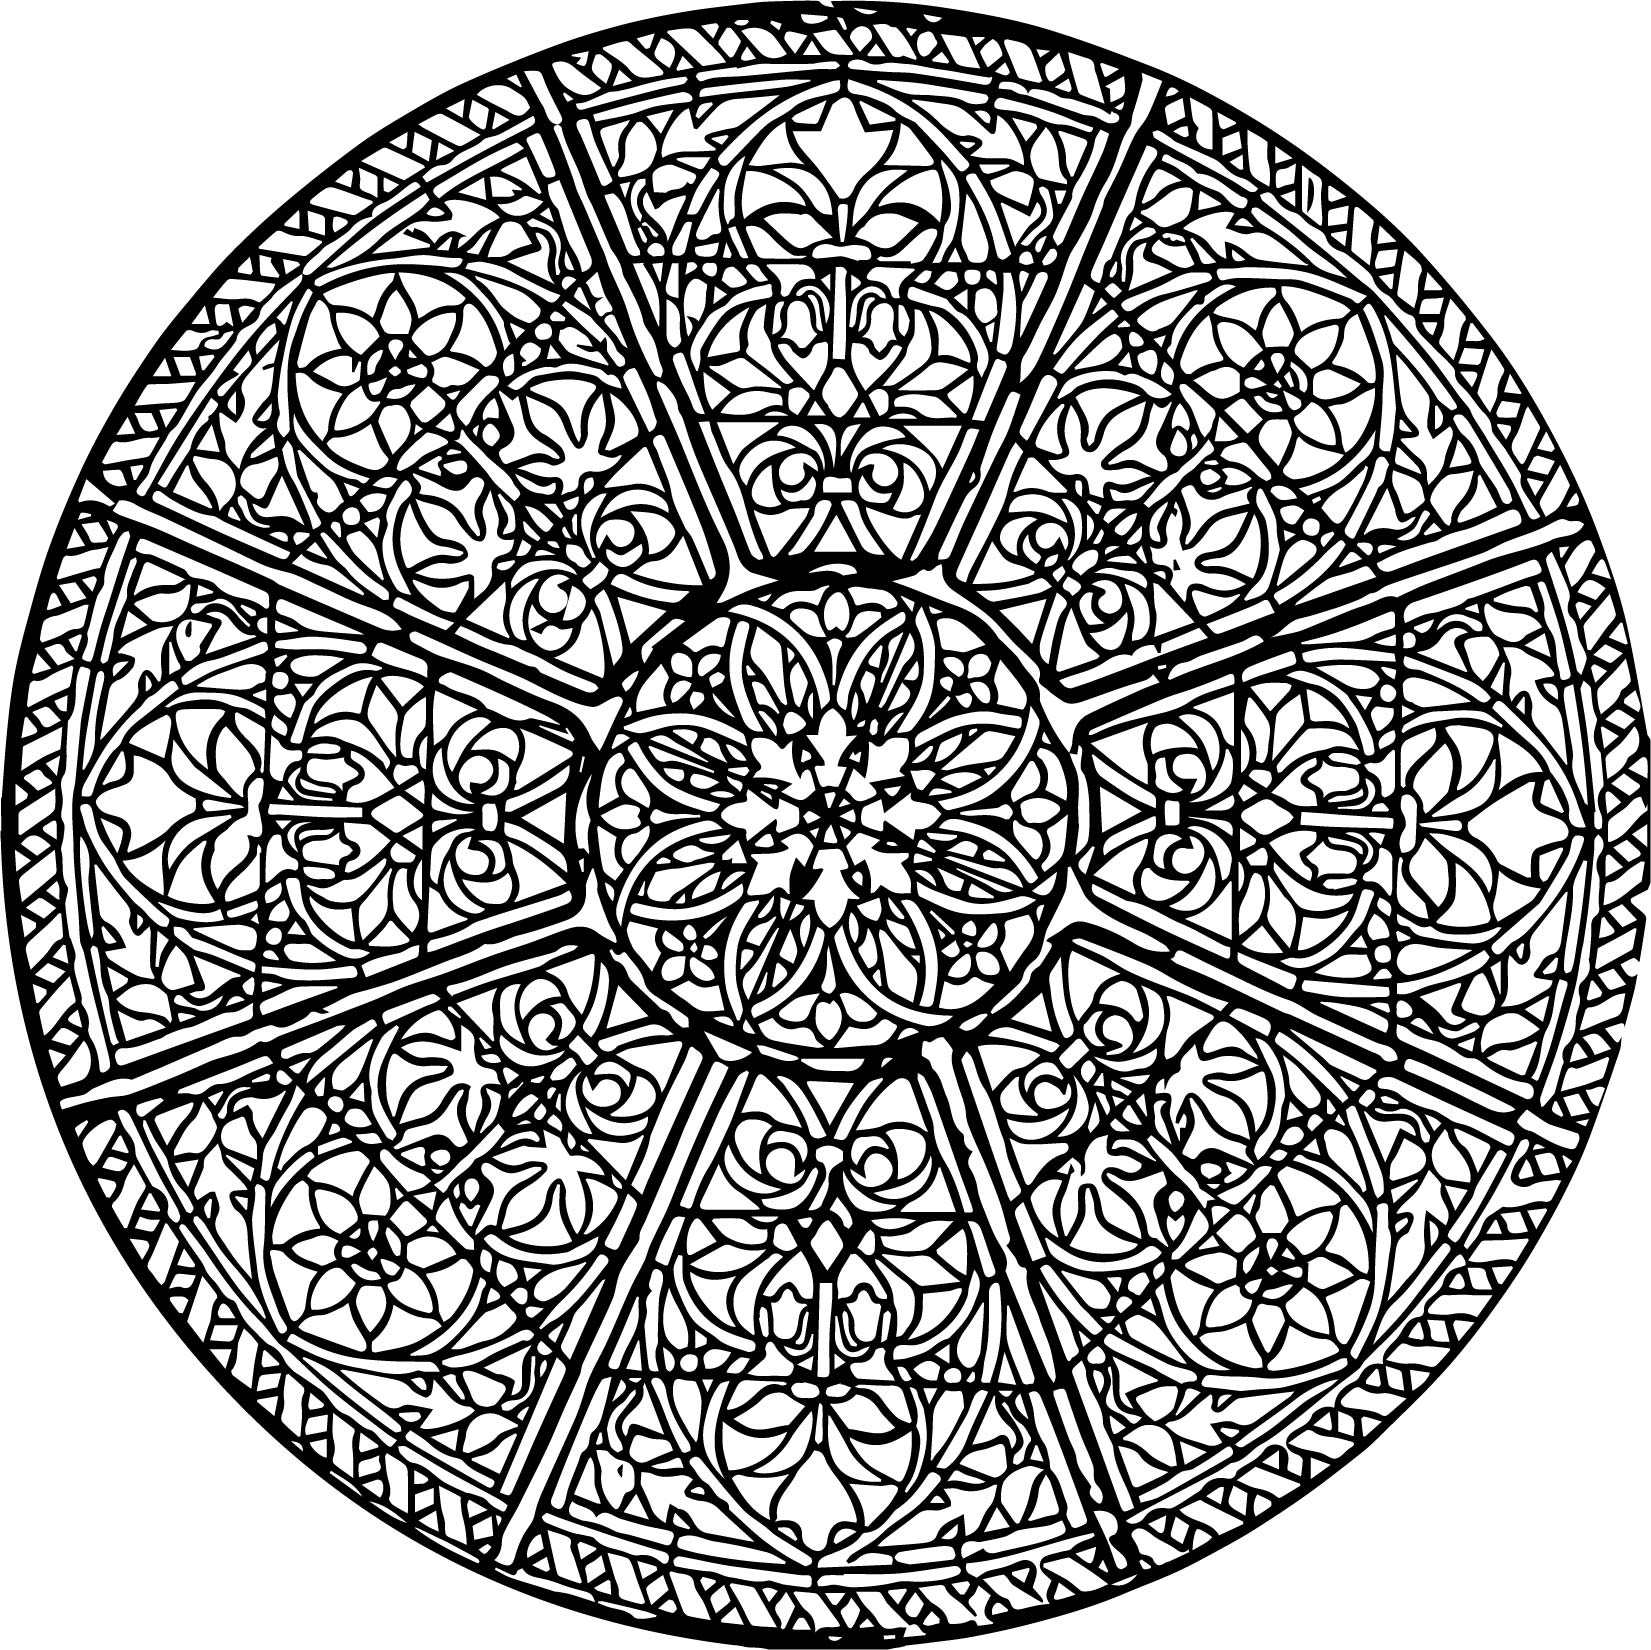 Circular Church Stained Glass Window Coloring Page